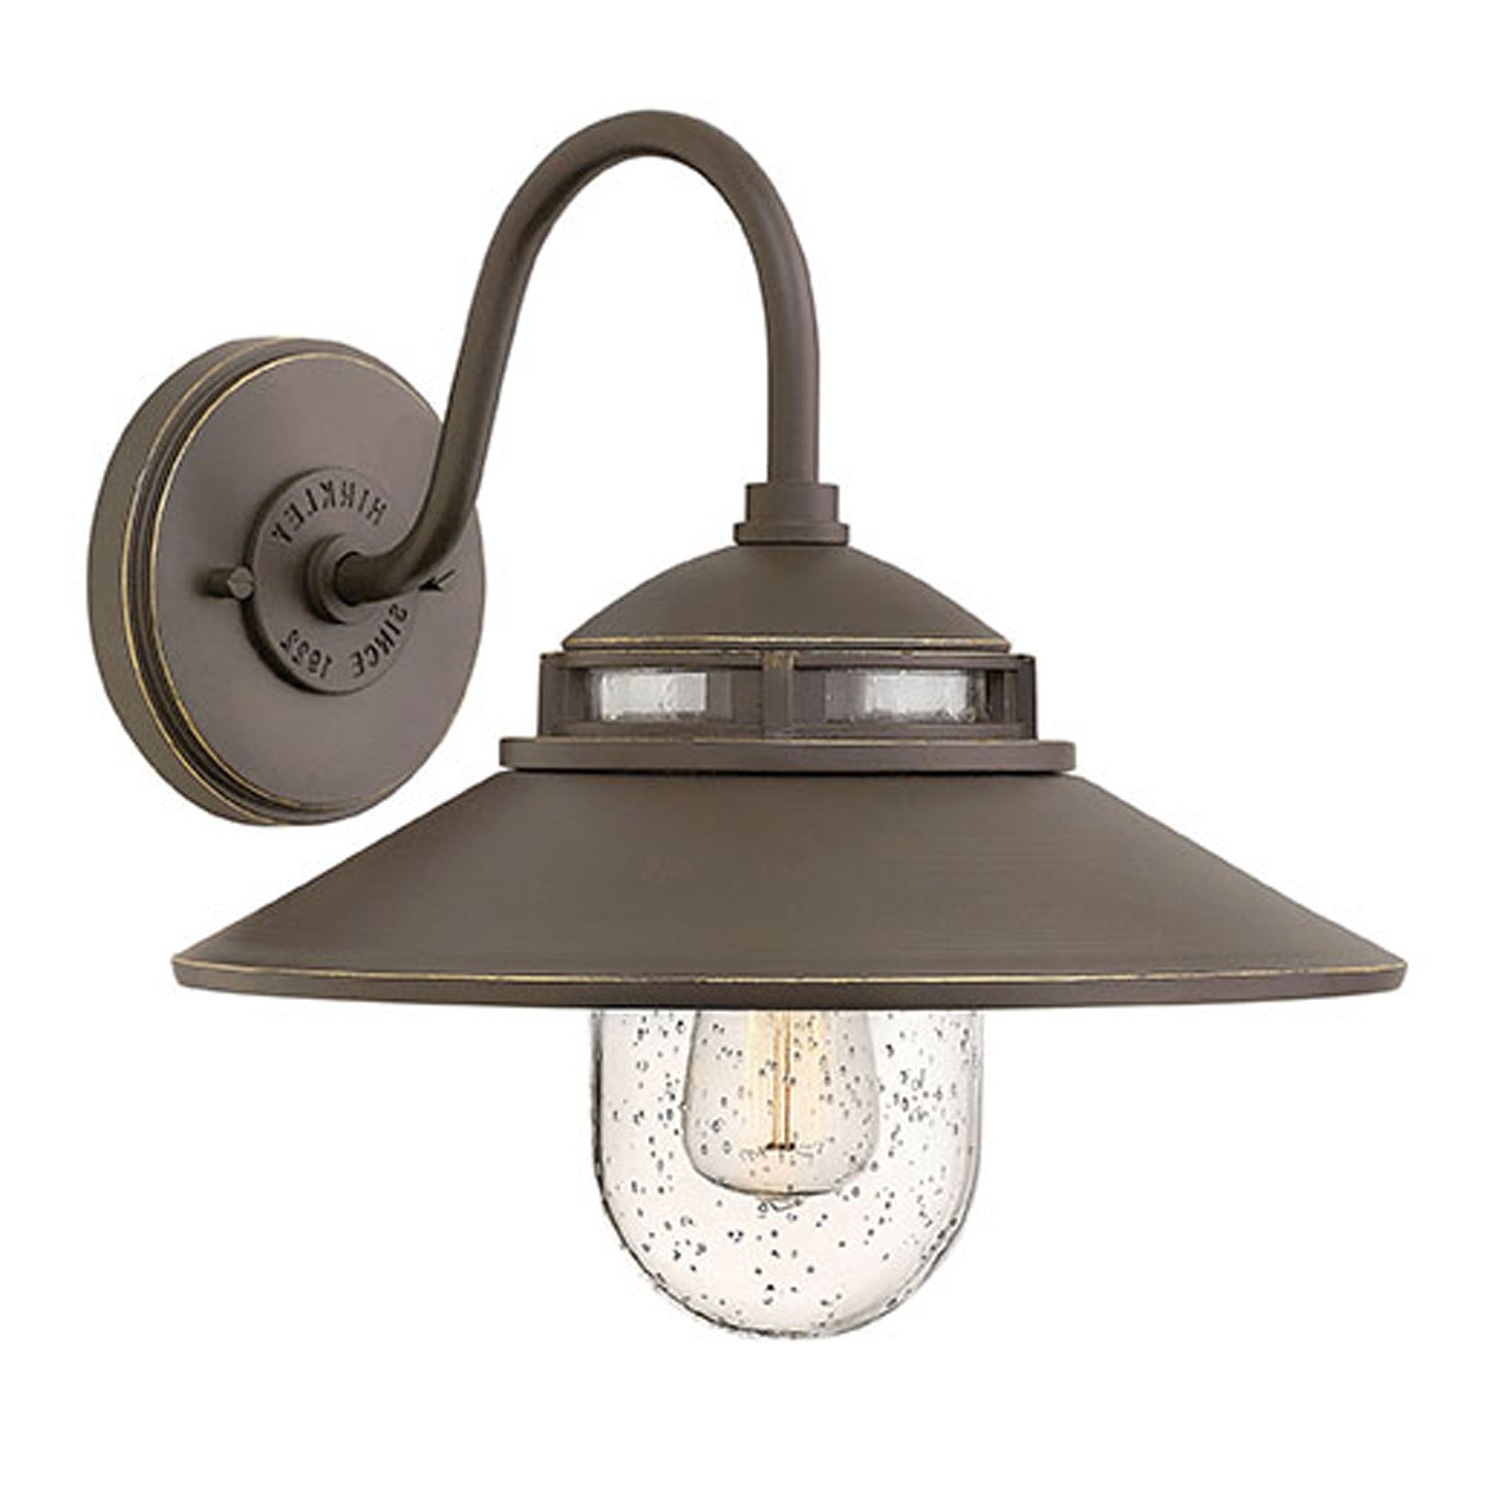 Atwell Oil Rubbed Bronze One Light Outdoor 12 Inch Small Wall Mount Regarding Preferred Double Wall Mount Hinkley Lighting (Gallery 17 of 20)